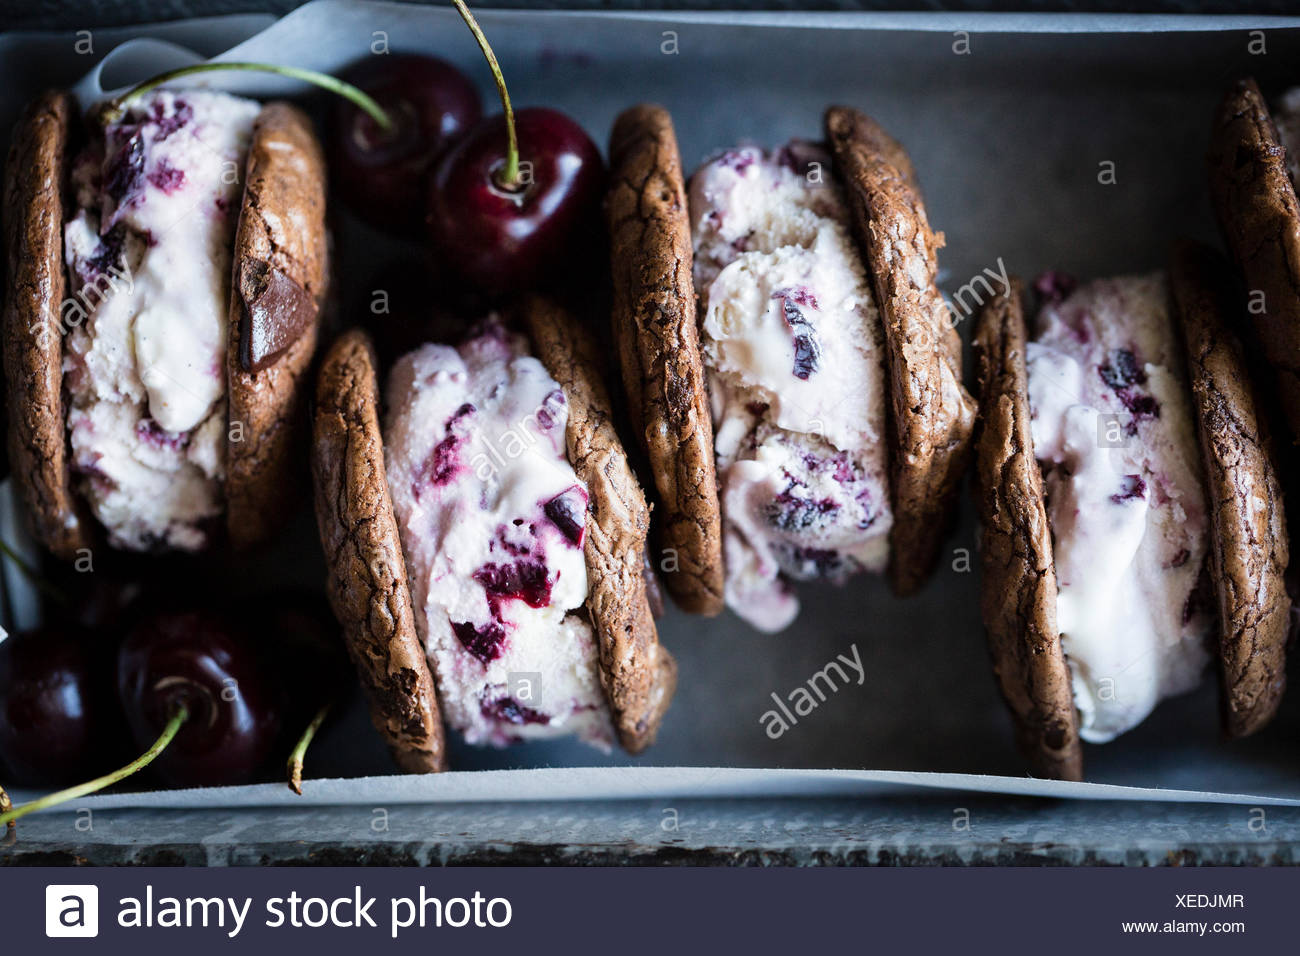 Roasted cherry ice cream sandwiches with salted double chocolate buckwheat cookies (gluten-free) - Stock Image